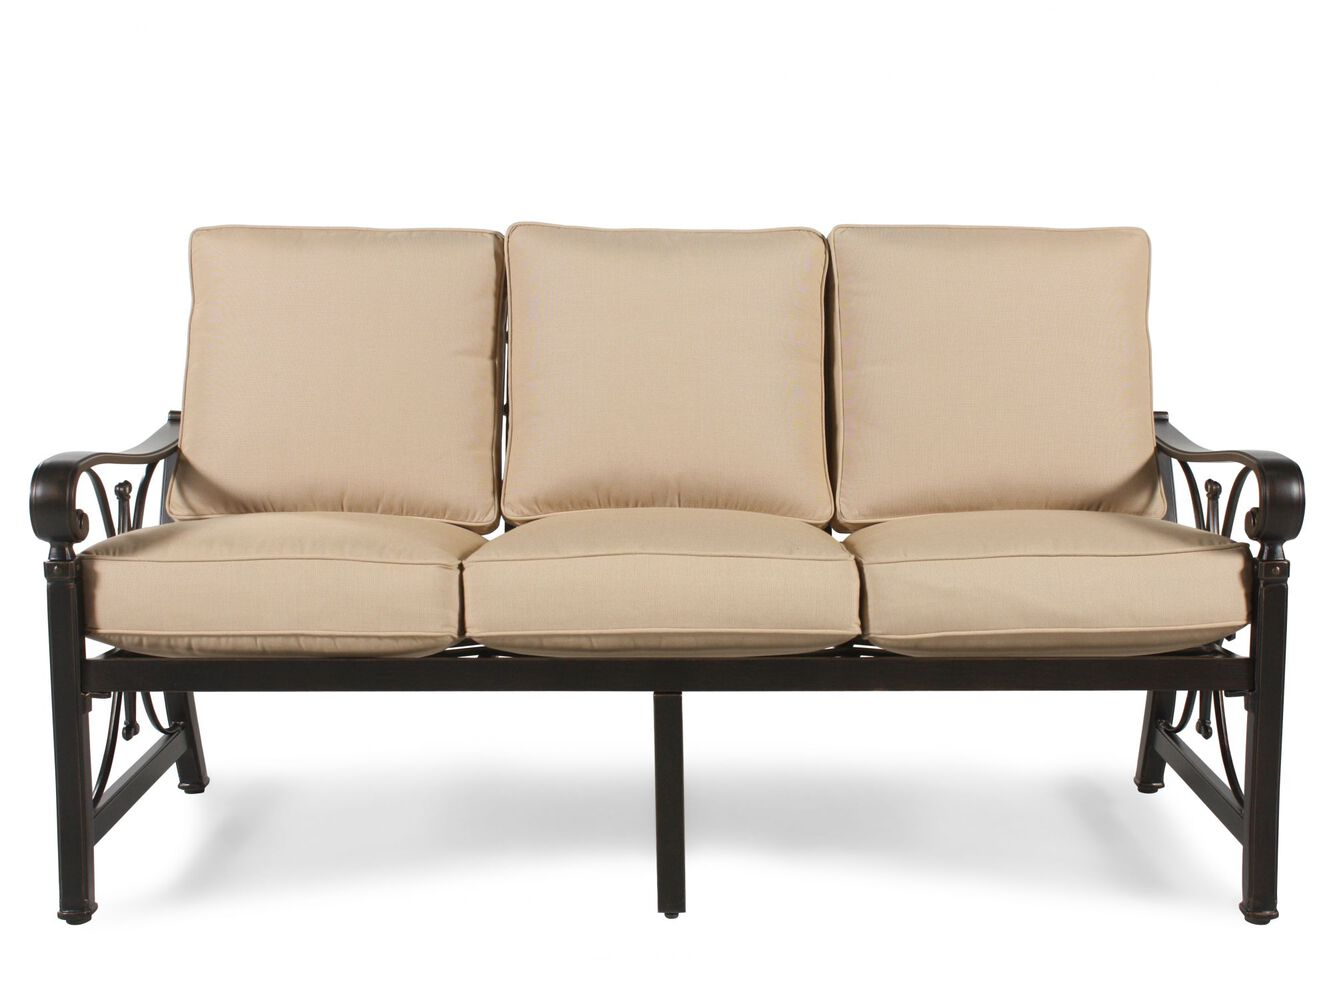 Agio Seville Patio Sofa